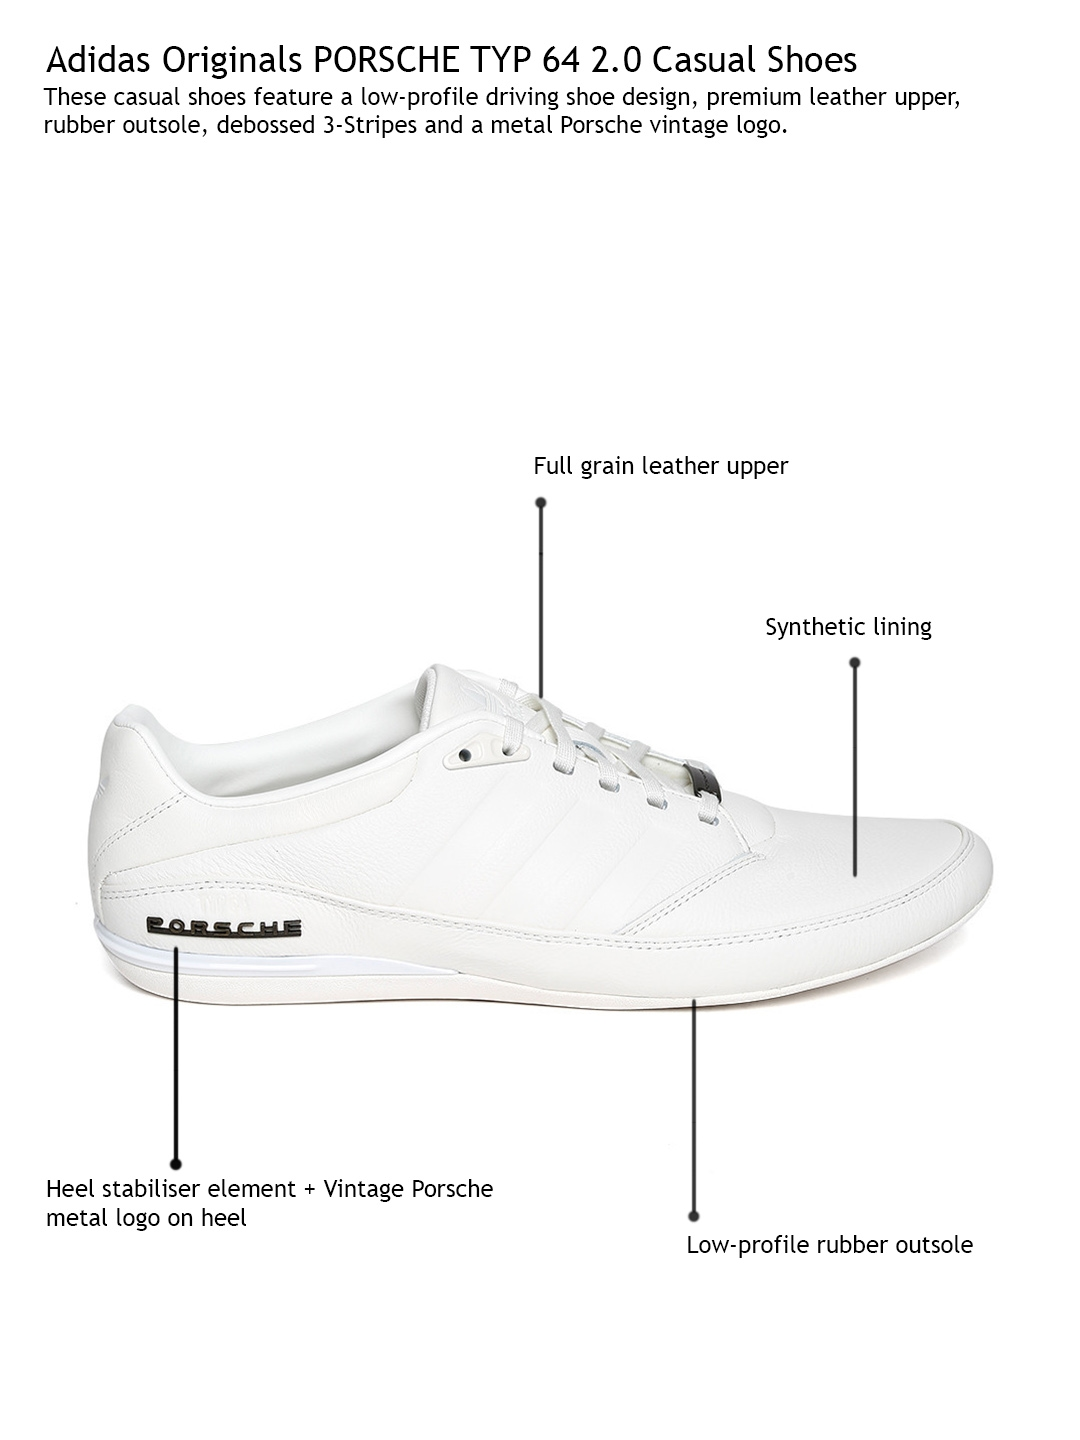 d8a6a739112b Buy ADIDAS Originals Men White Porsche TYP 64 2.0 Leather Casual ...